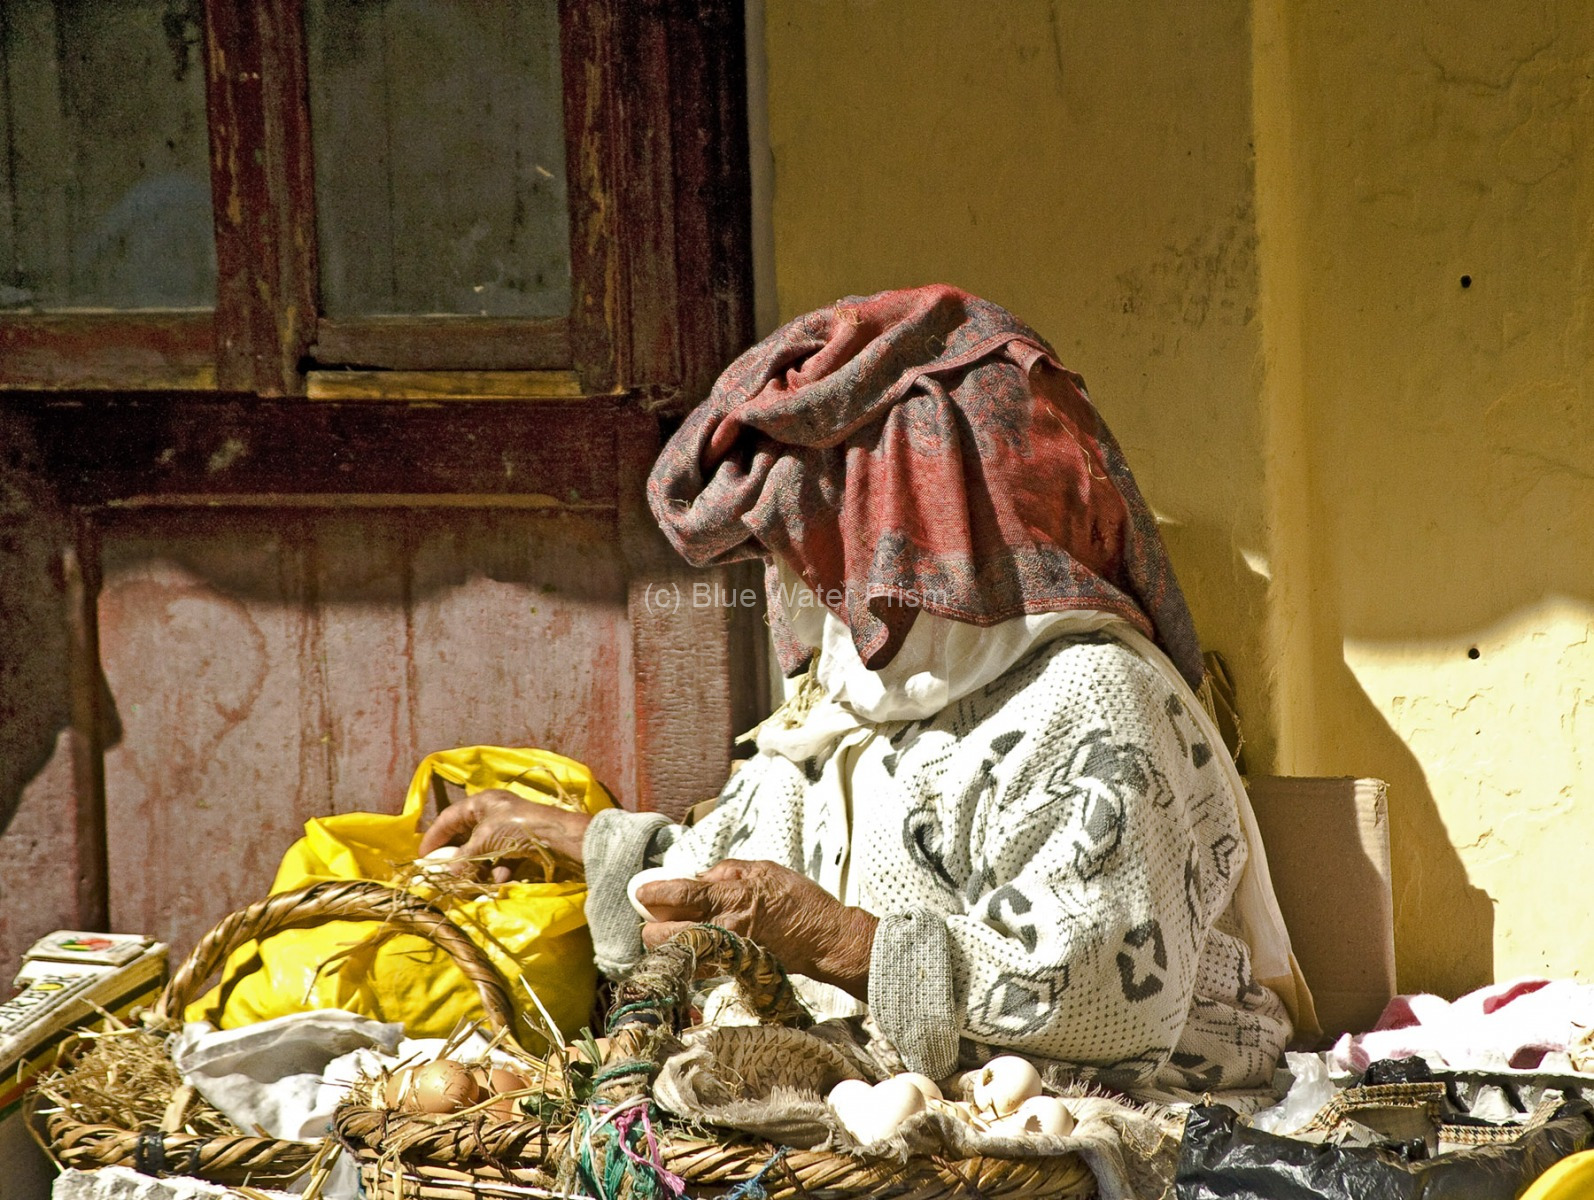 Market in Tangiers selling eggs